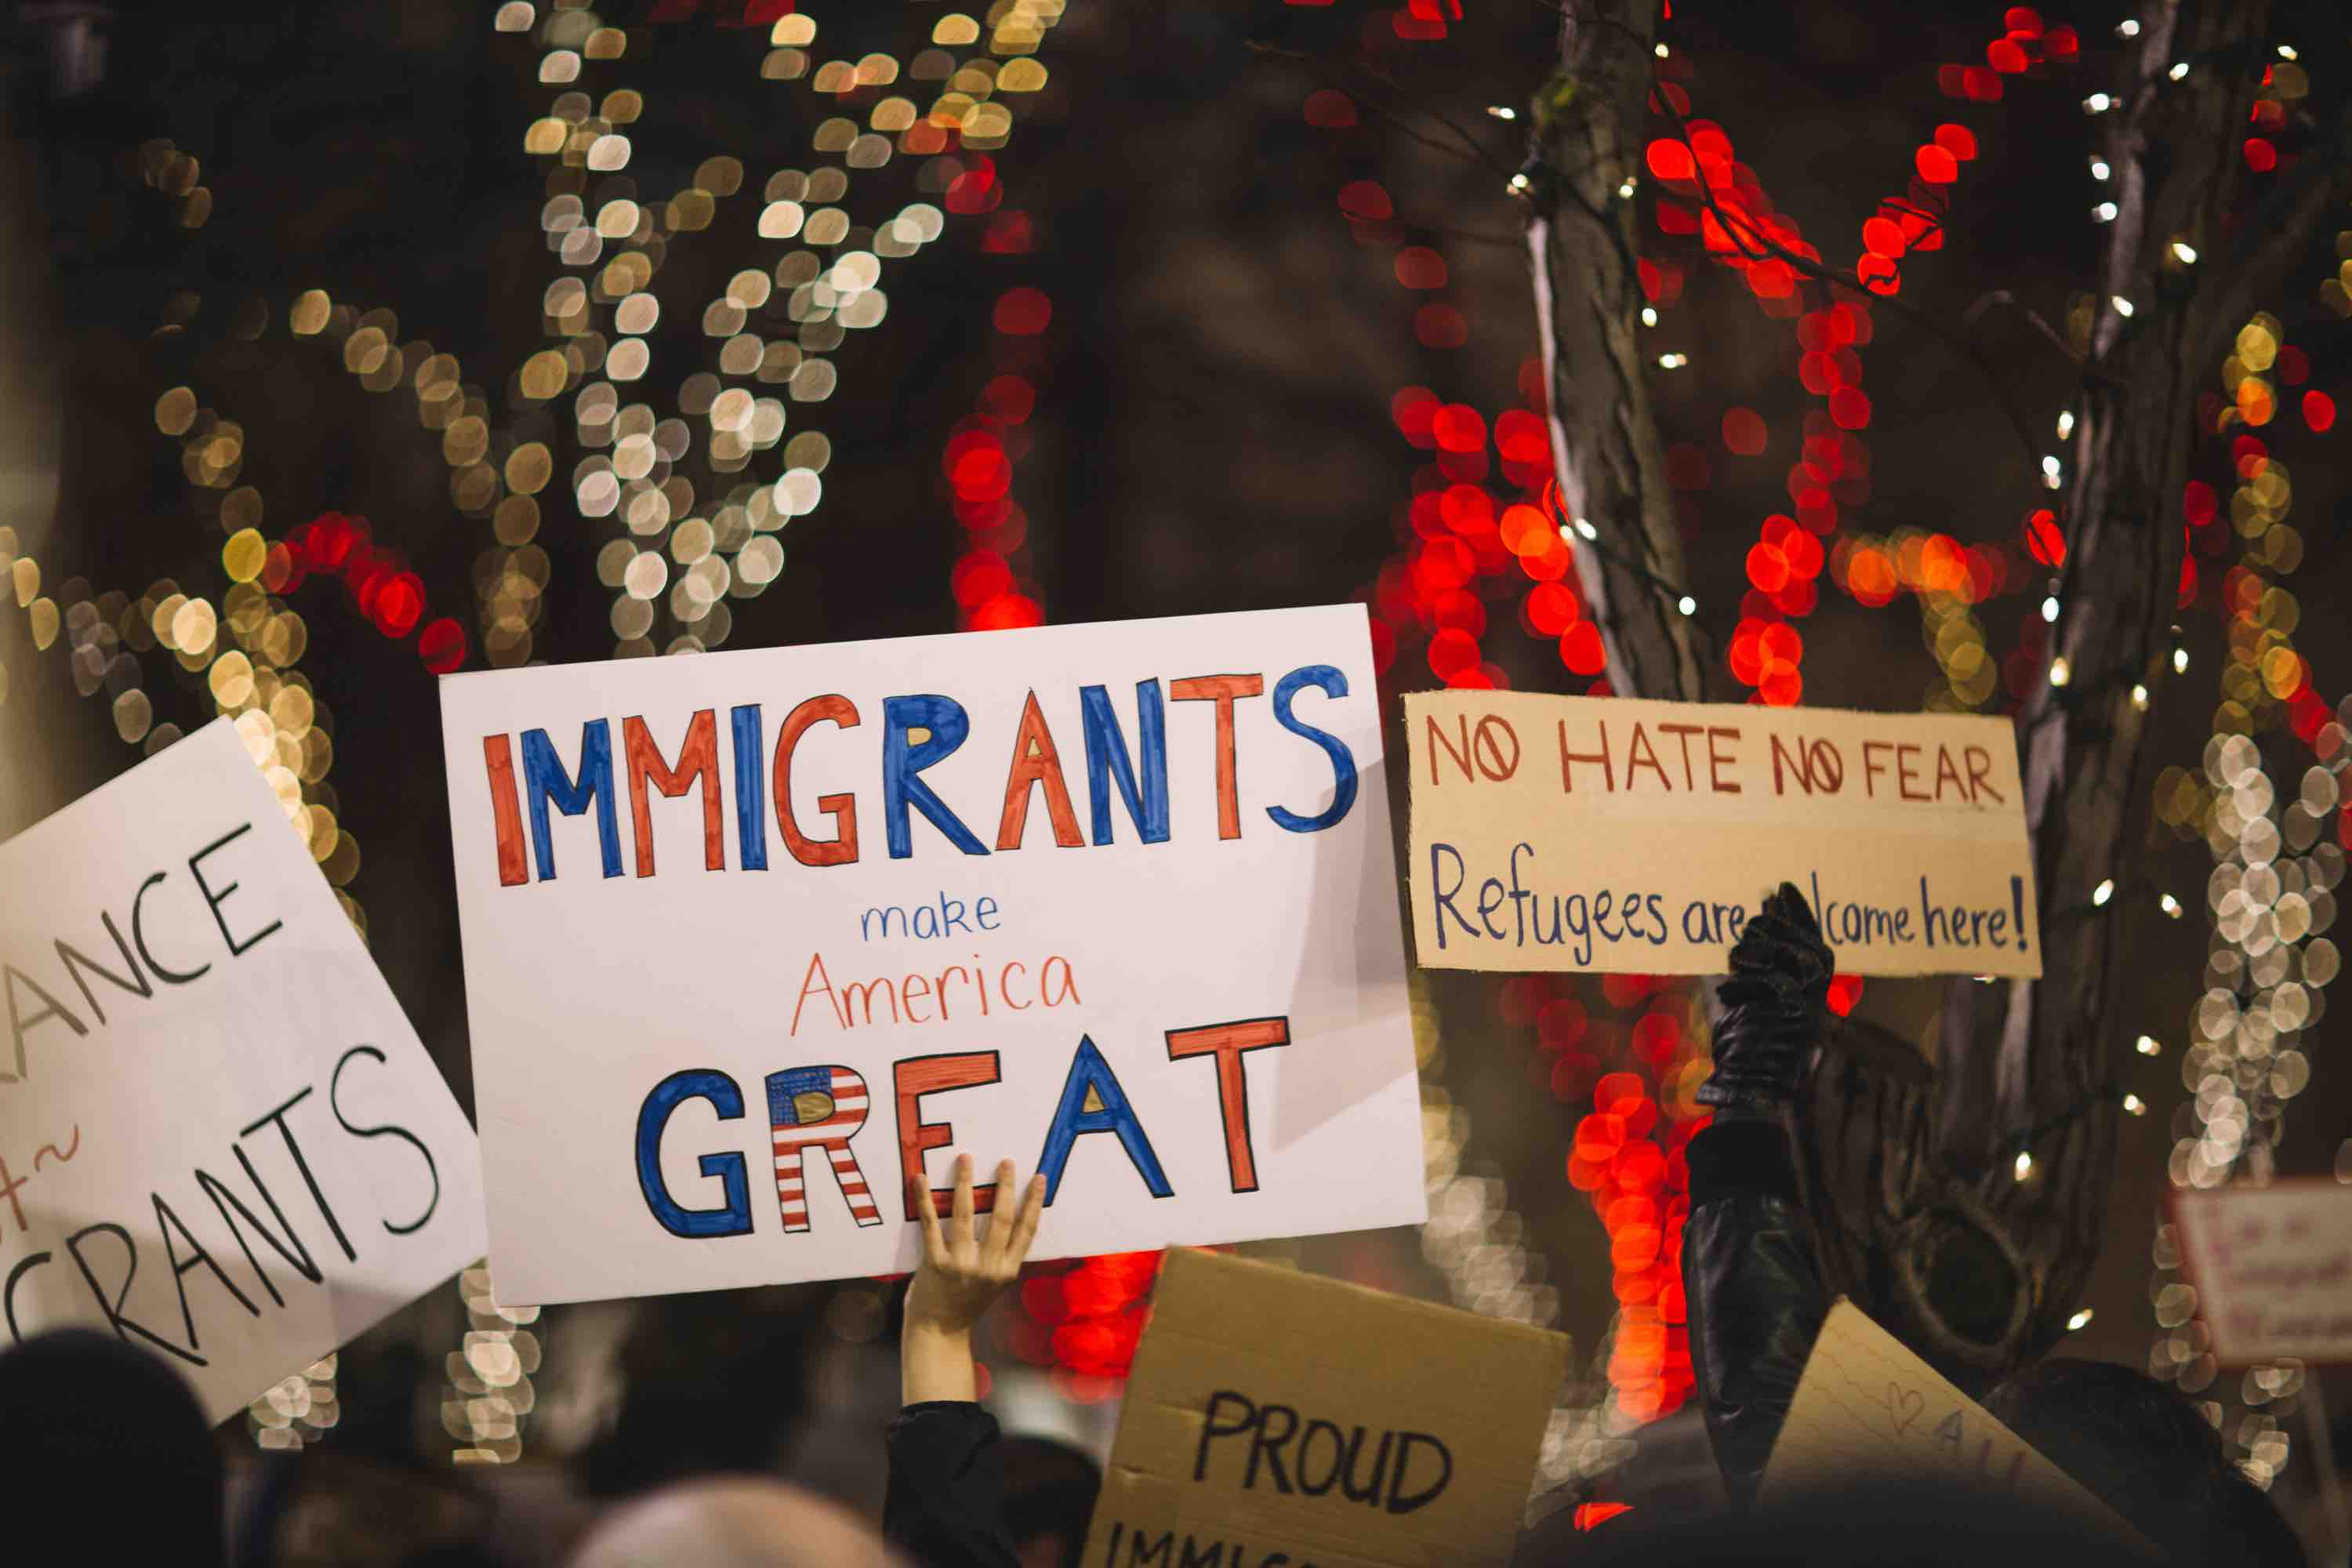 Navigate The Immigration Process Legally With The Right Counsel